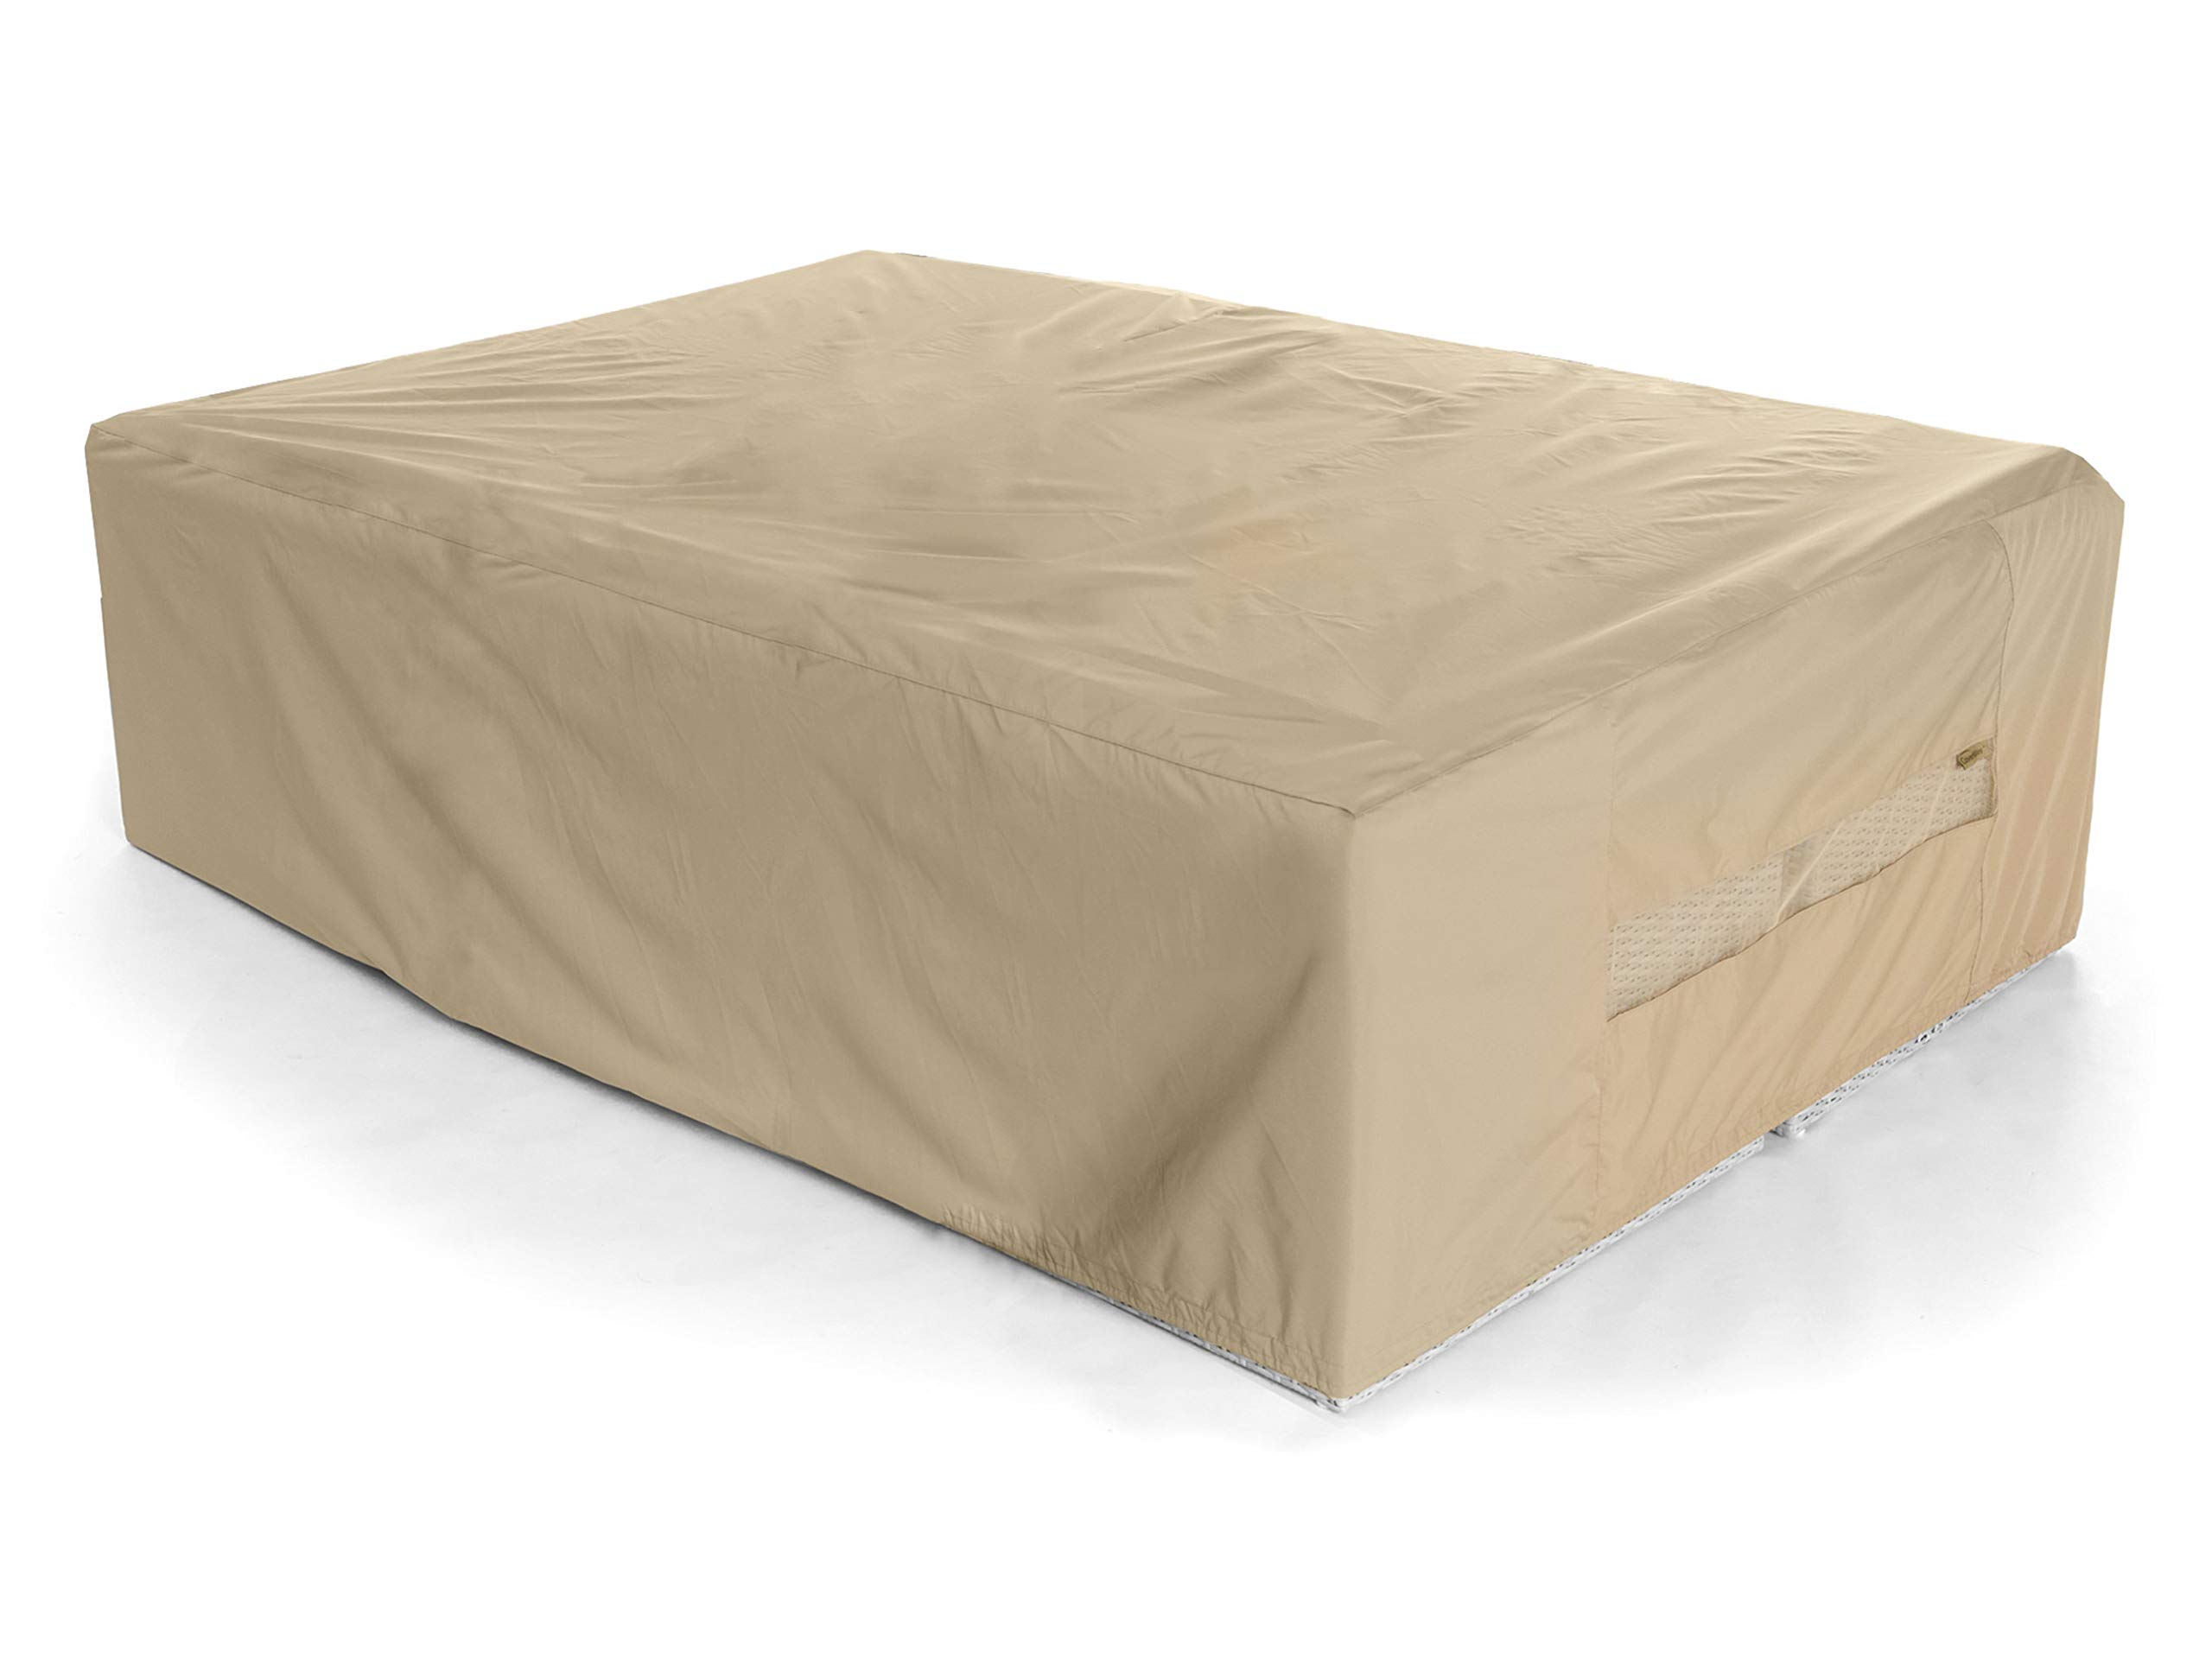 Covermates - Modular Sectional Sofa Cover - 138 Inch Width x 68 Inch Depth x 30 Inch Height - Elite - 300 Denier Polyester - Mesh Vent - 2 Buckle Straps - 3 Year Warranty - Water Resistant - Khaki by Covermates